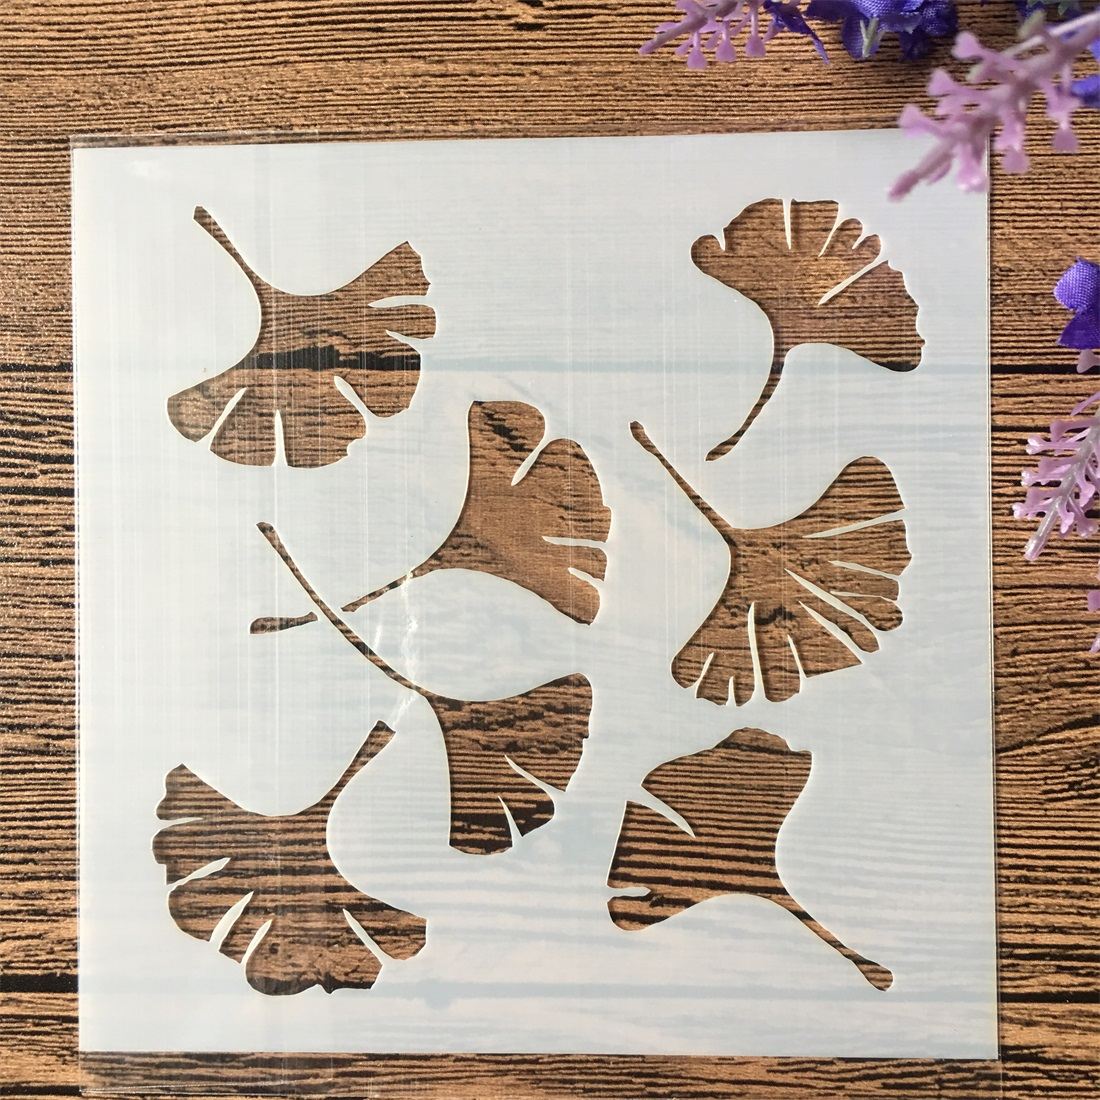 2019 Ginkgo 13cm DIY Craft Layering Stencils Wall Painting Scrapbooking Stamping Embossing Album Decorative Paper Card Template